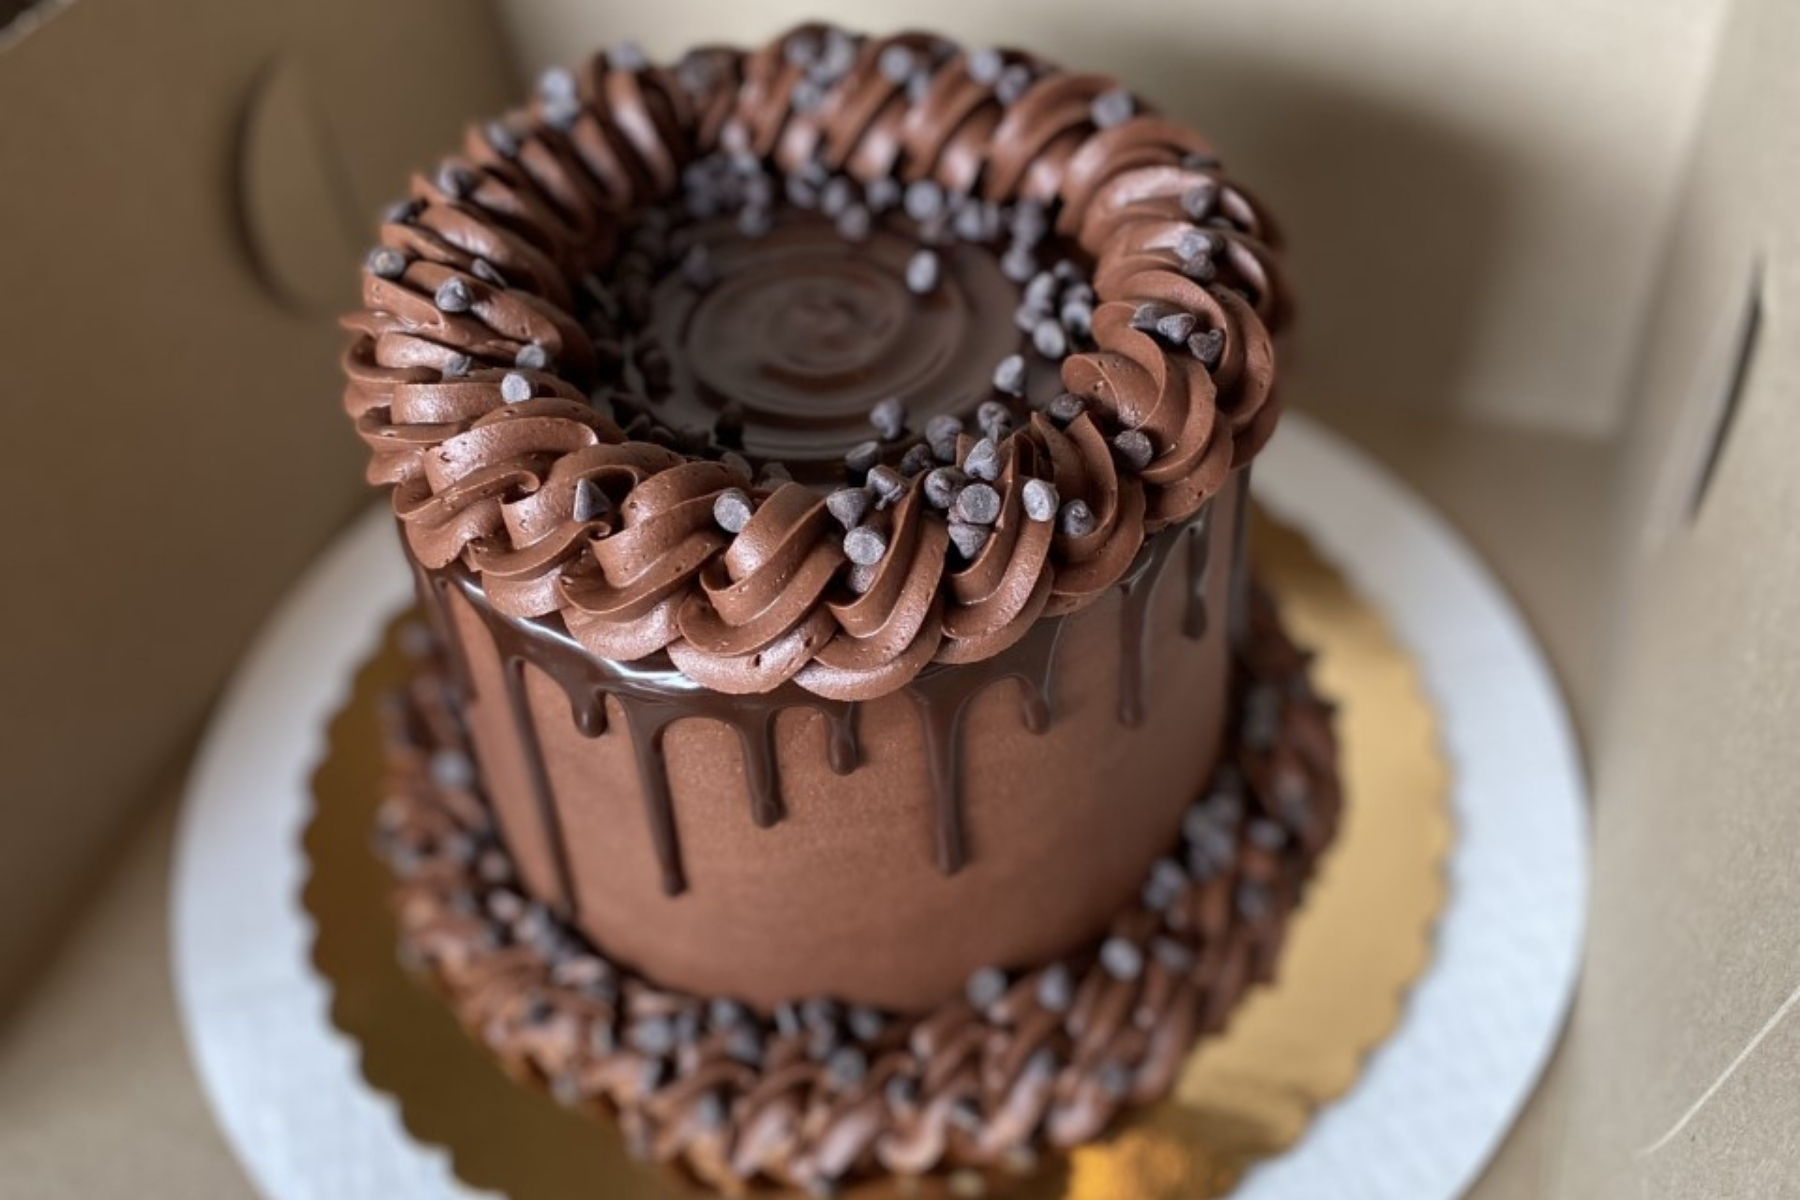 A tall chocolate cake with swirls of frosting and chocolate drizzle.